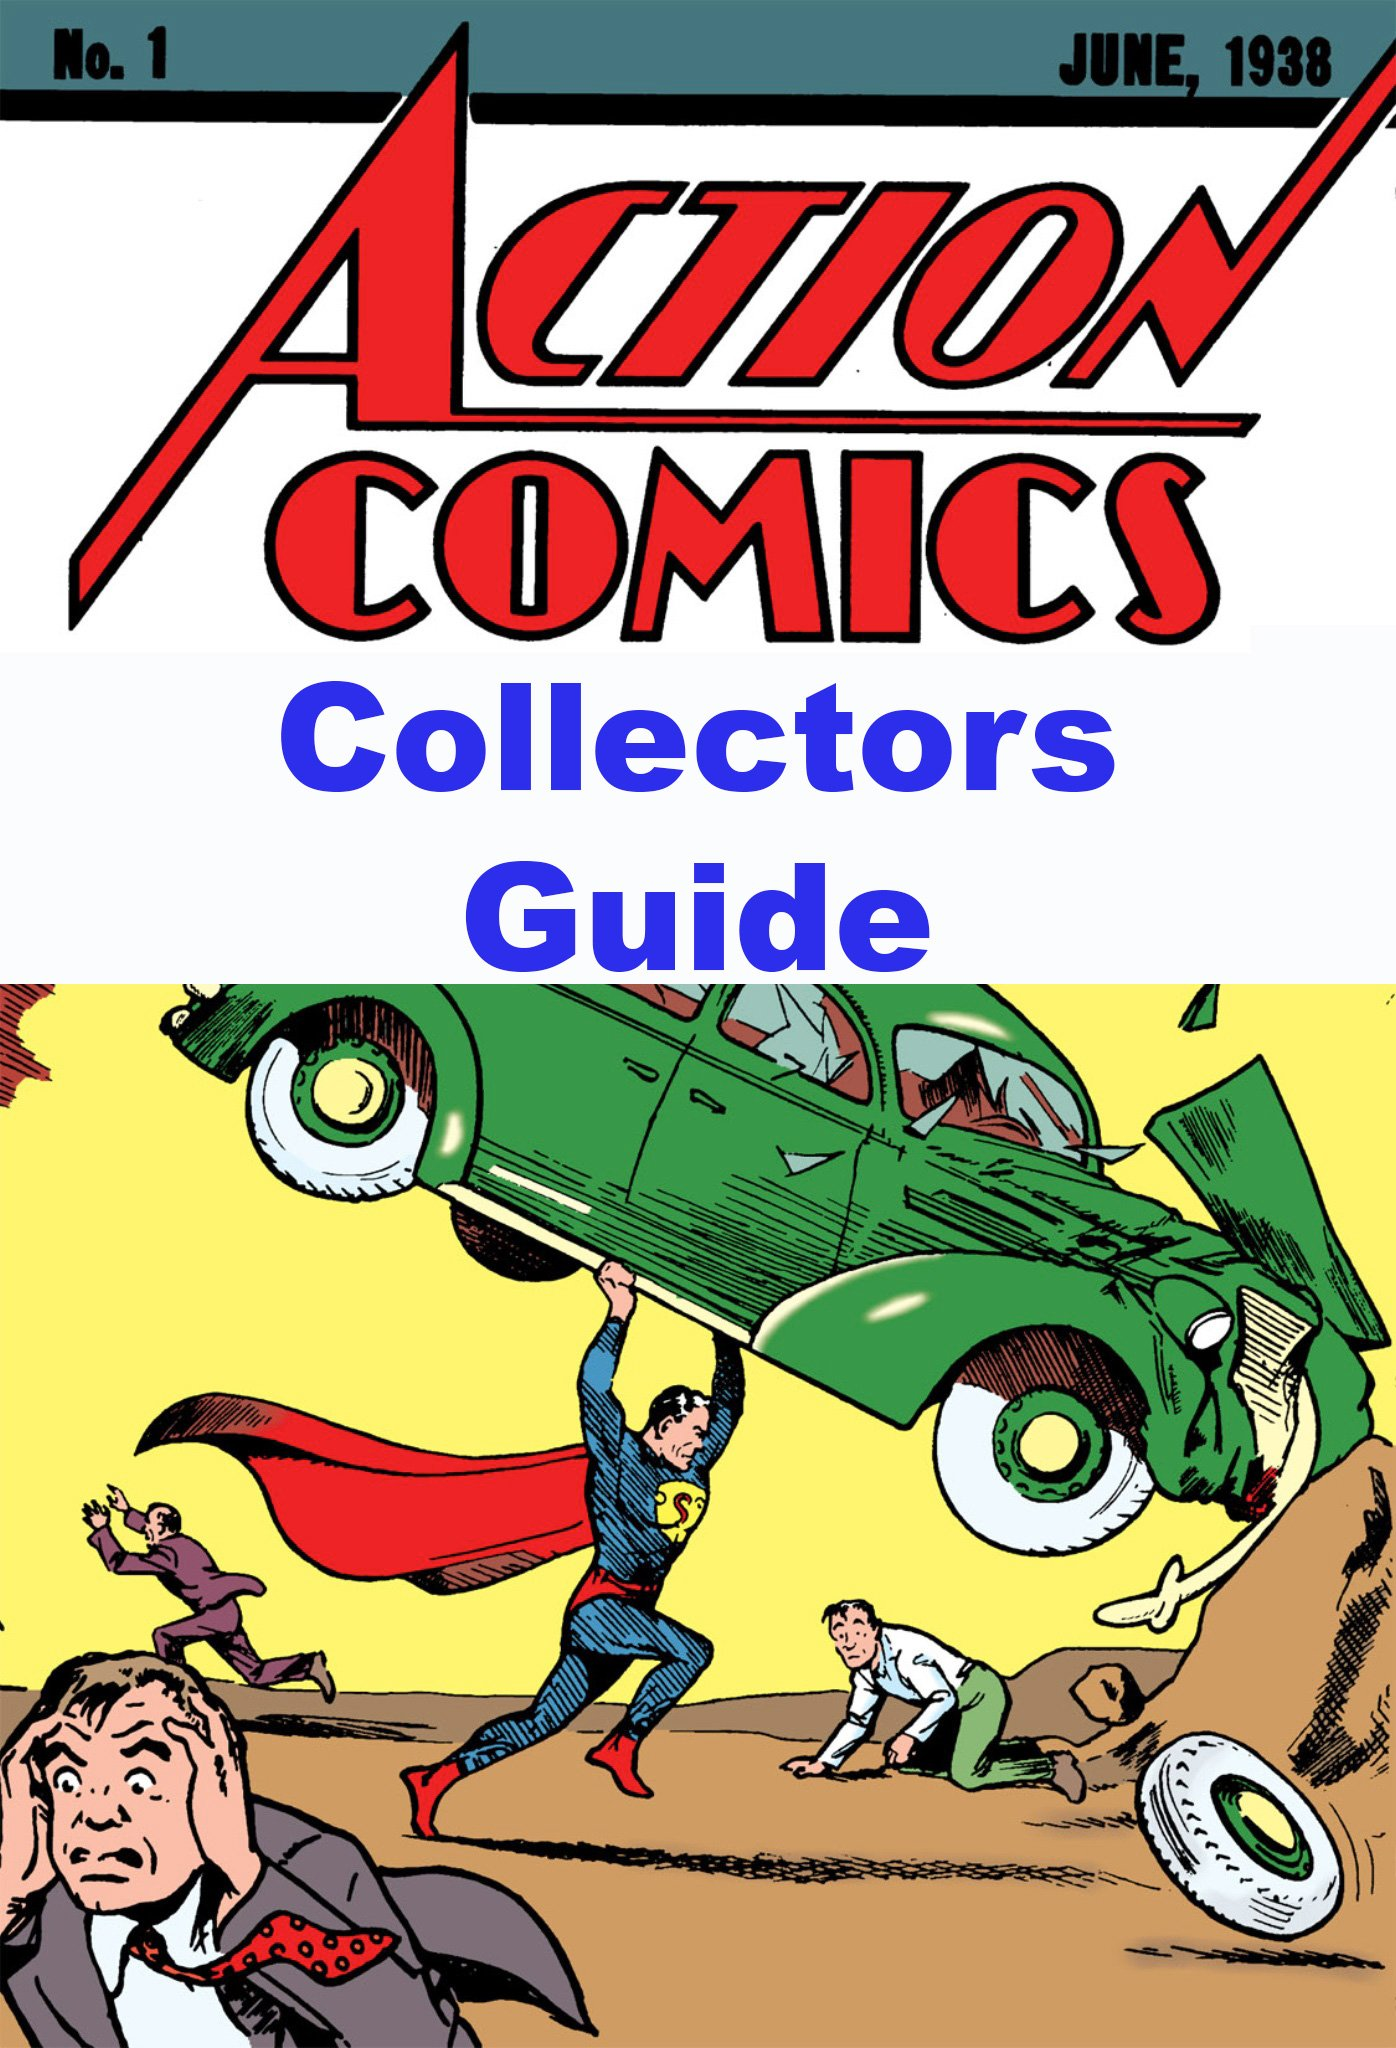 Action Comics Collectors Guide Starring Superman: All 904 Issues from # 1 in 1938 to # 904 in 2011